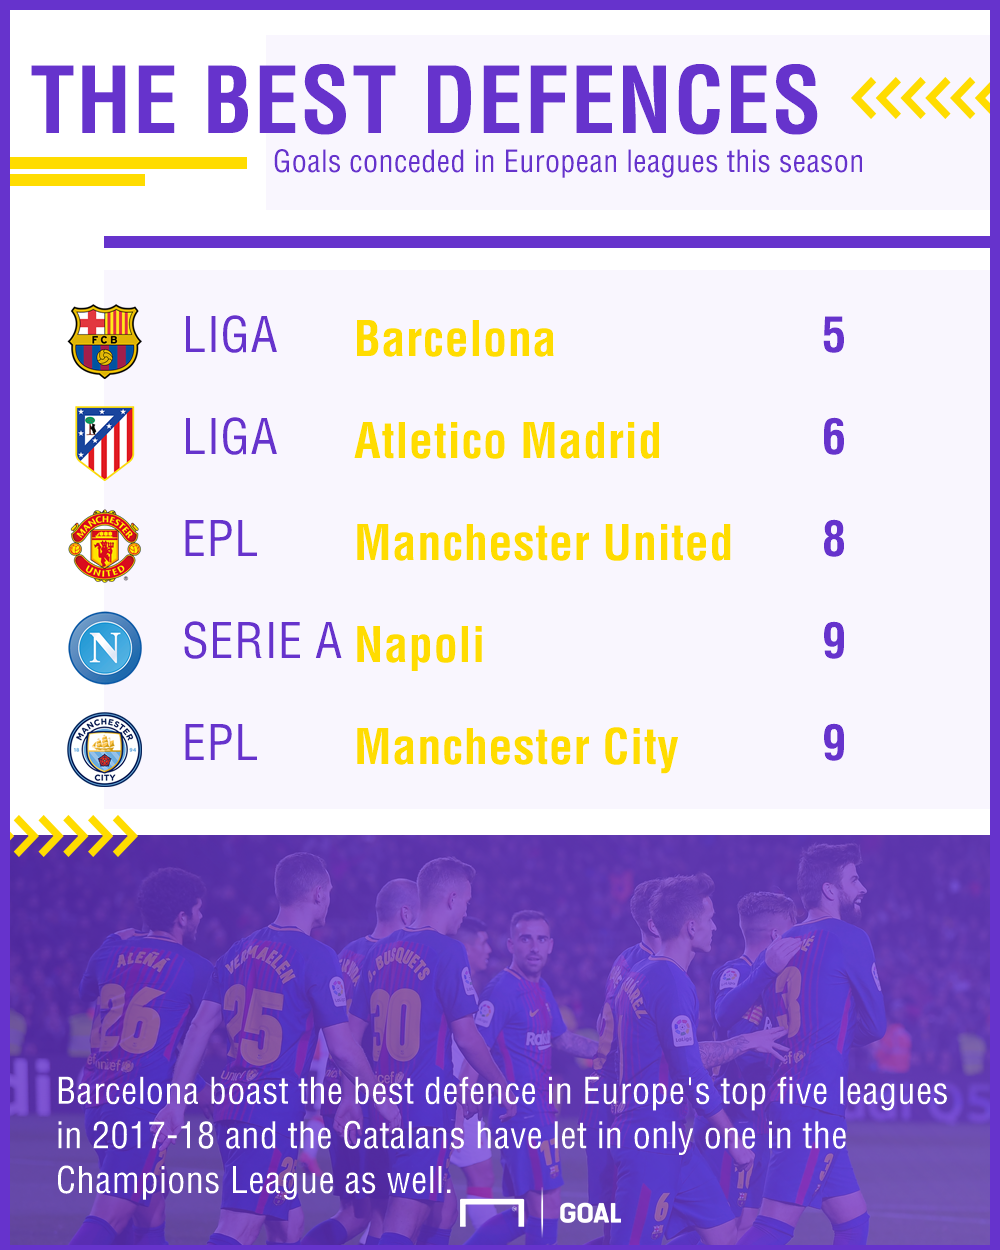 Best defences in Europe graphic